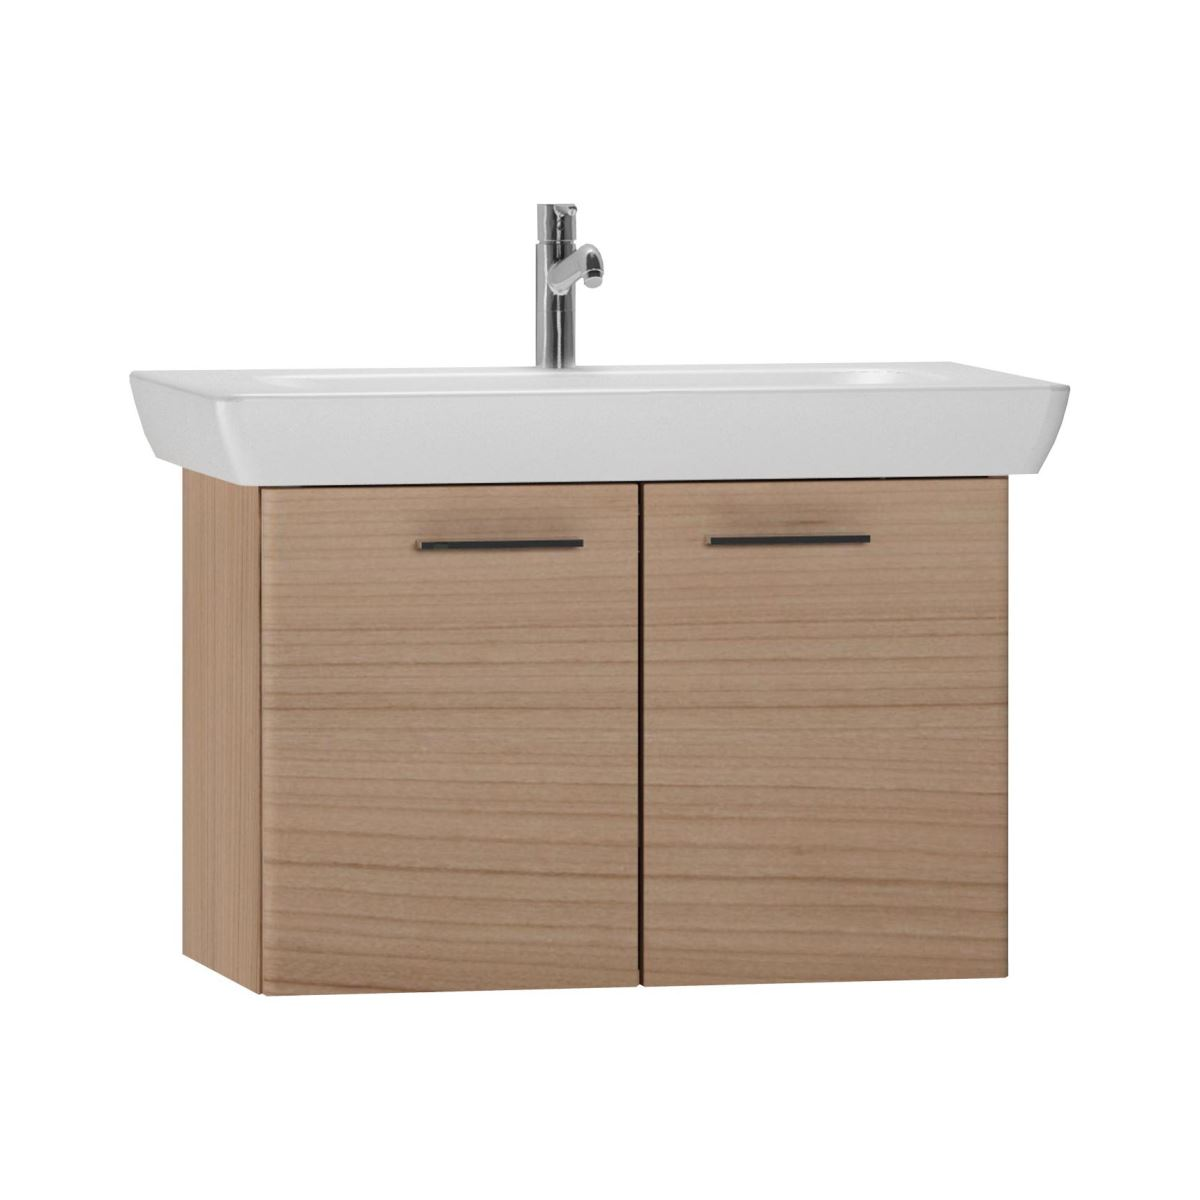 click on 85cm Double Door Vanity Unit with Basin image to enlarge